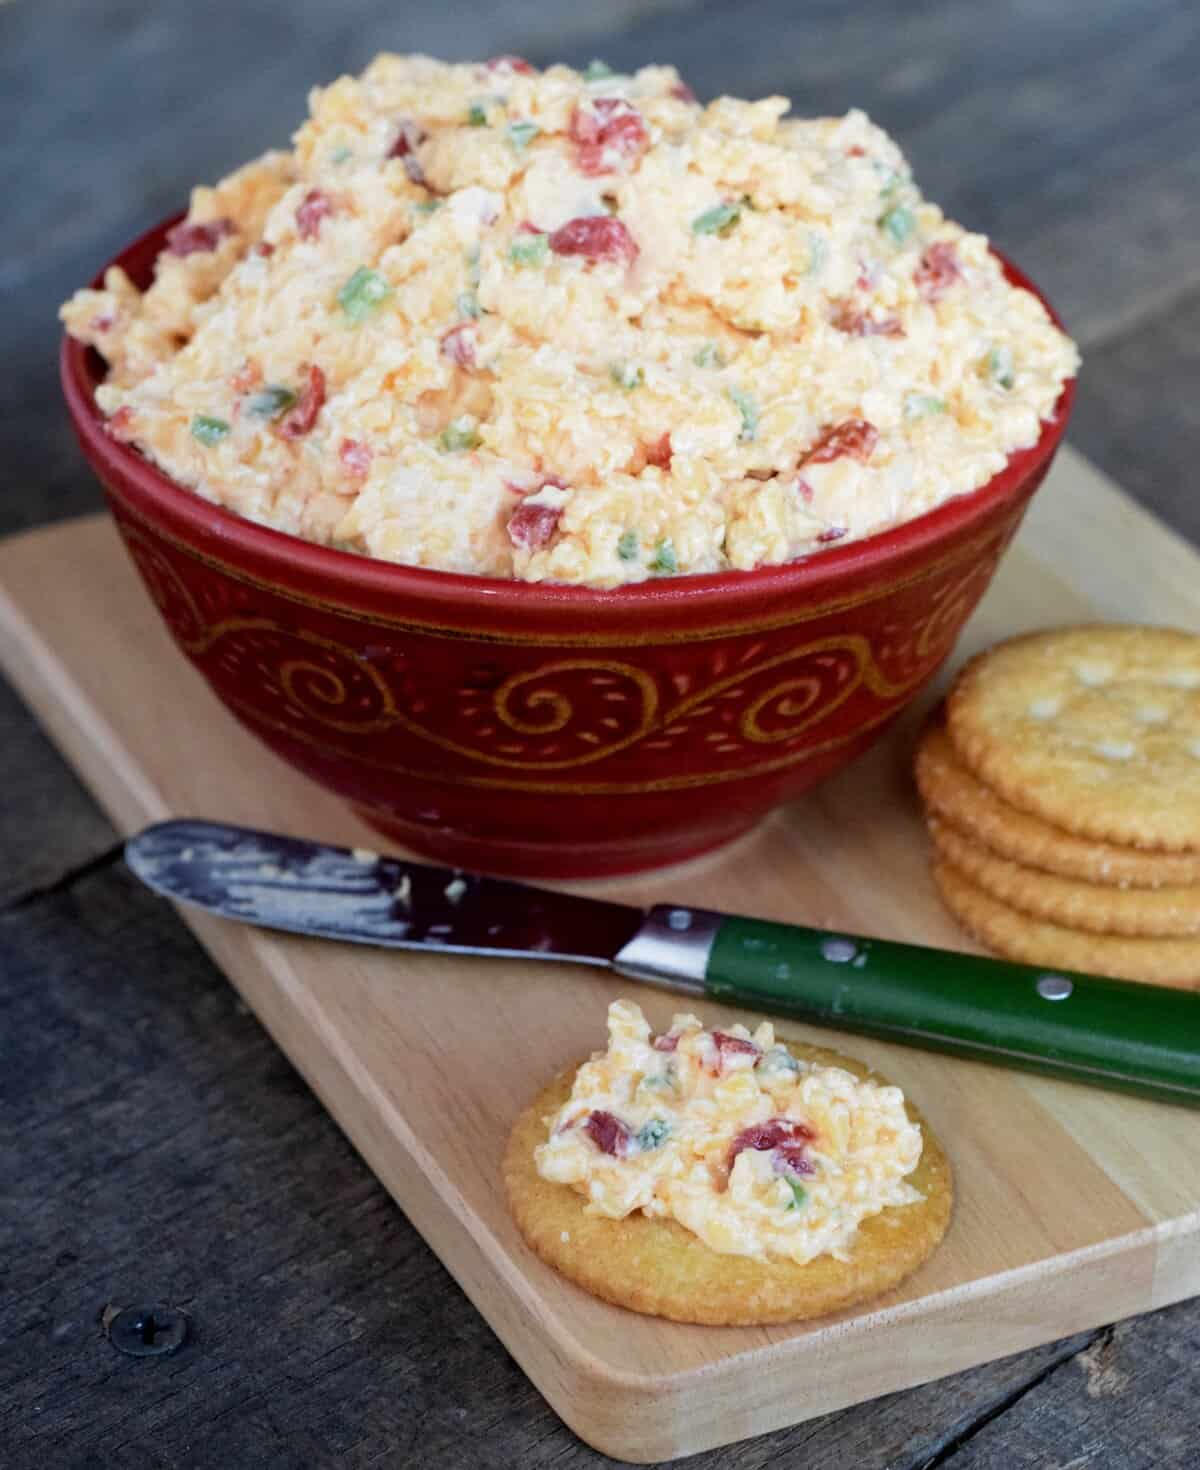 Red bowl of white pimento cheese with flecks of red and green on a wooden cutting board